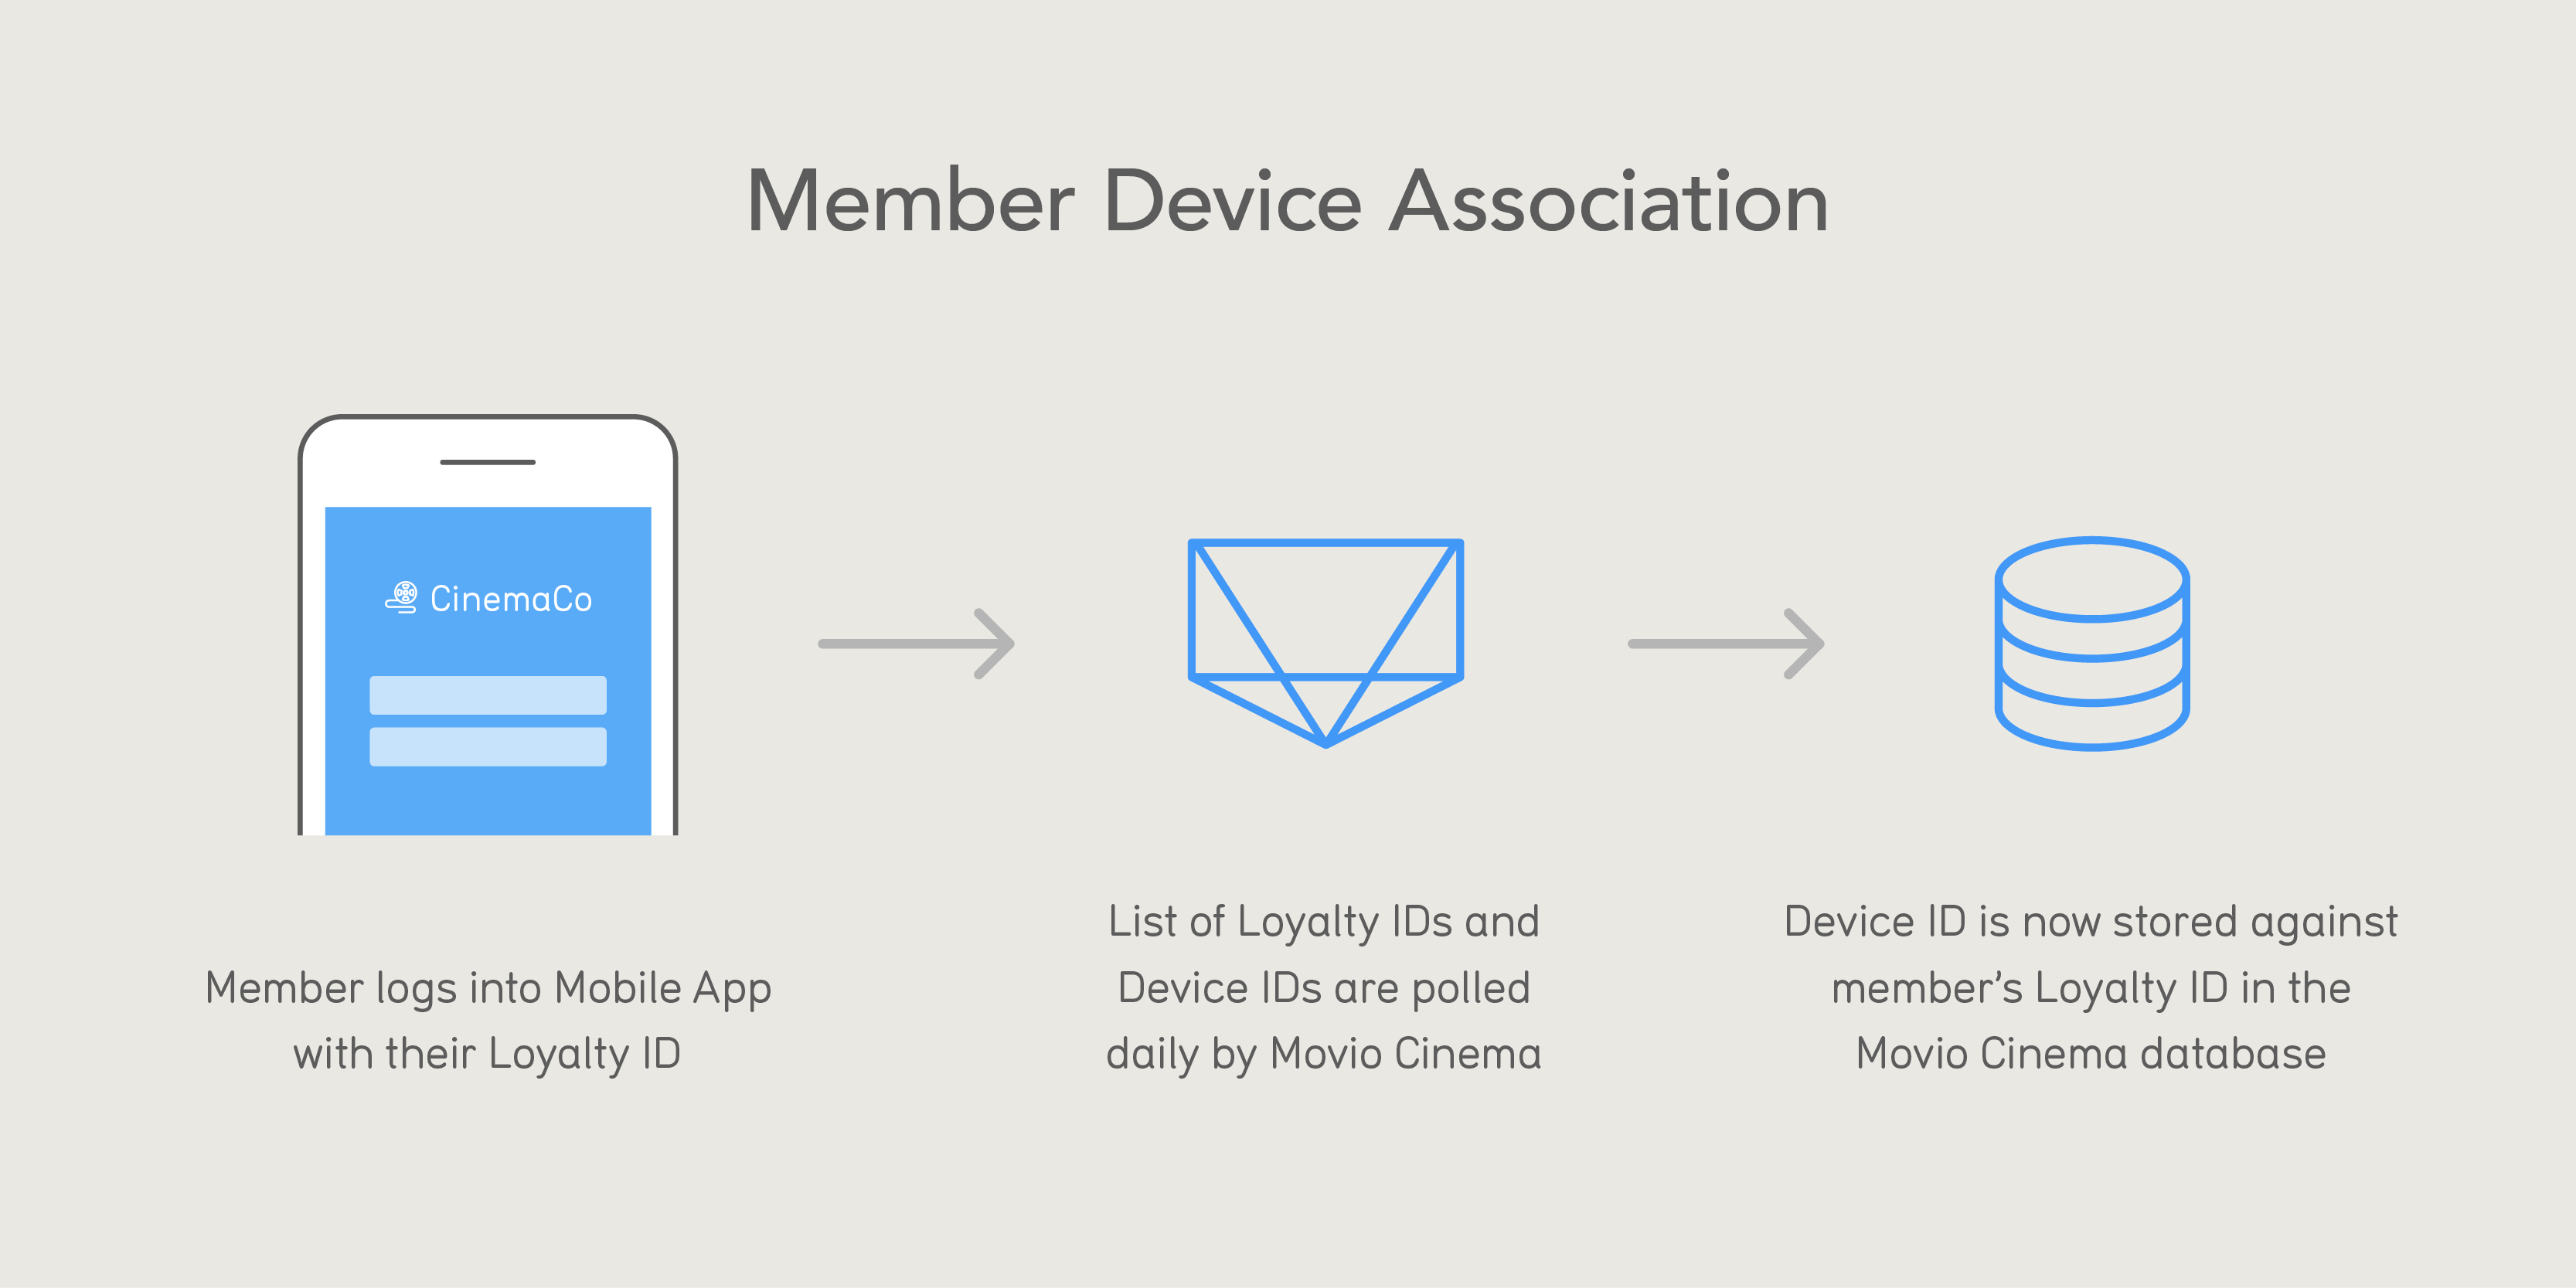 Mobile Connect Diagrams-MemberDeviceAssociation.jpg